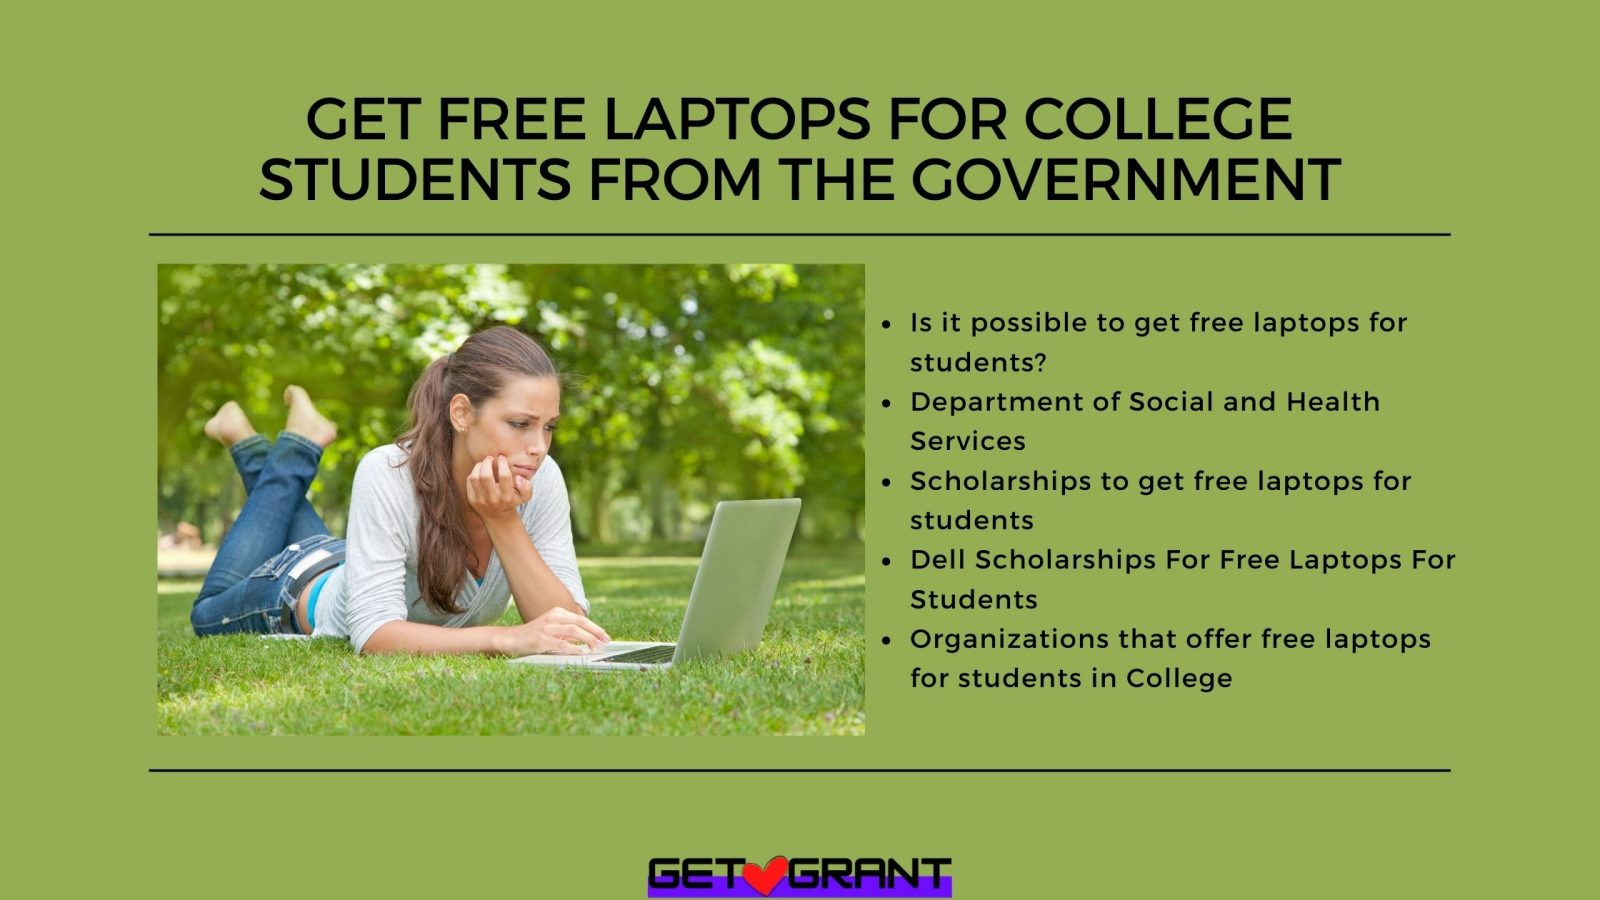 Get Free Laptops for College Students from the Government